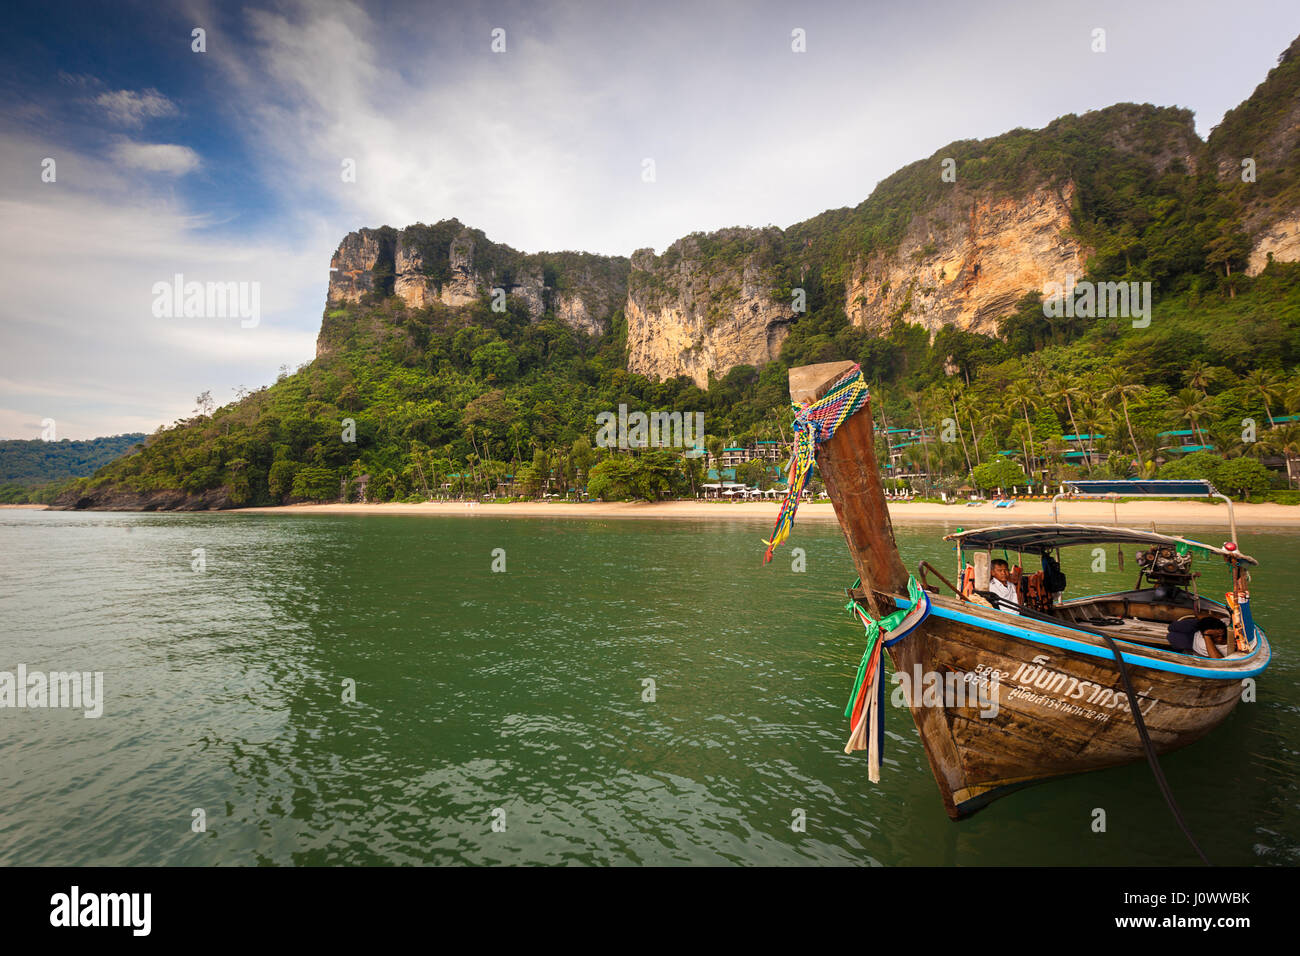 Long Tail Boat moored off Pai Plong Beach, Ao Nang, province de Krabi, Thaïlande, Asie du Sud-Est Photo Stock